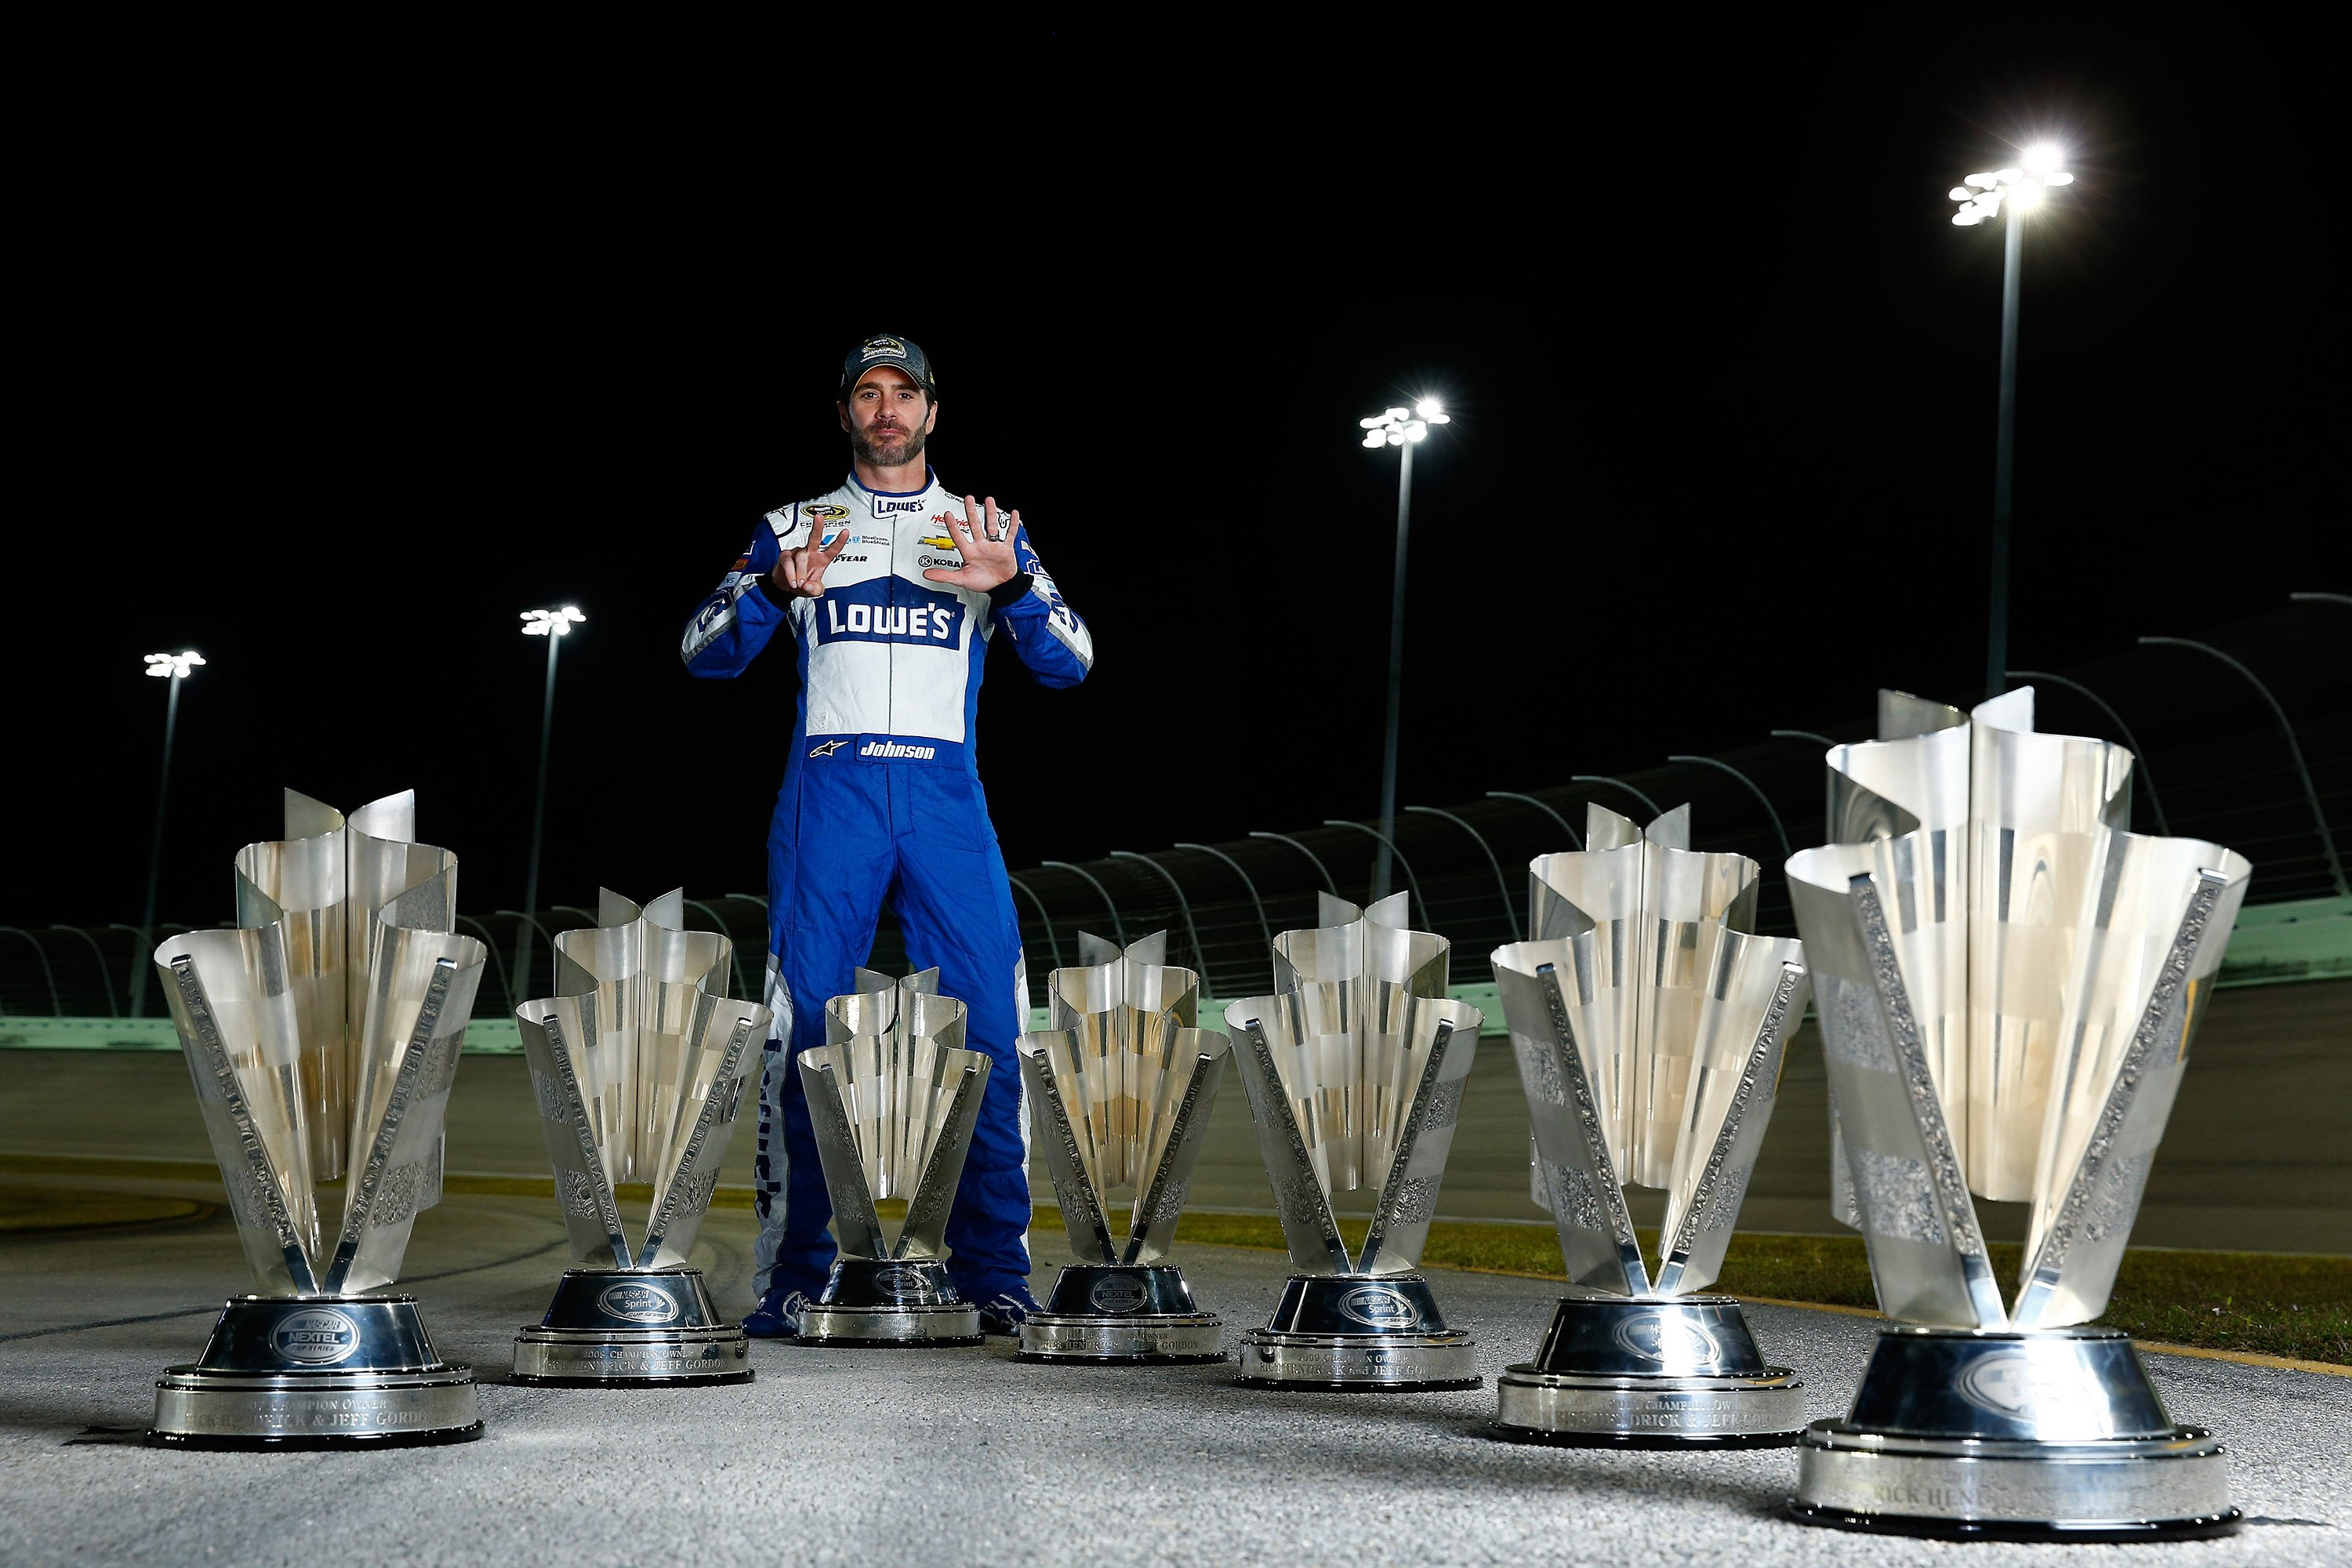 7-time NASCAR Champion - Jimmie Johnson